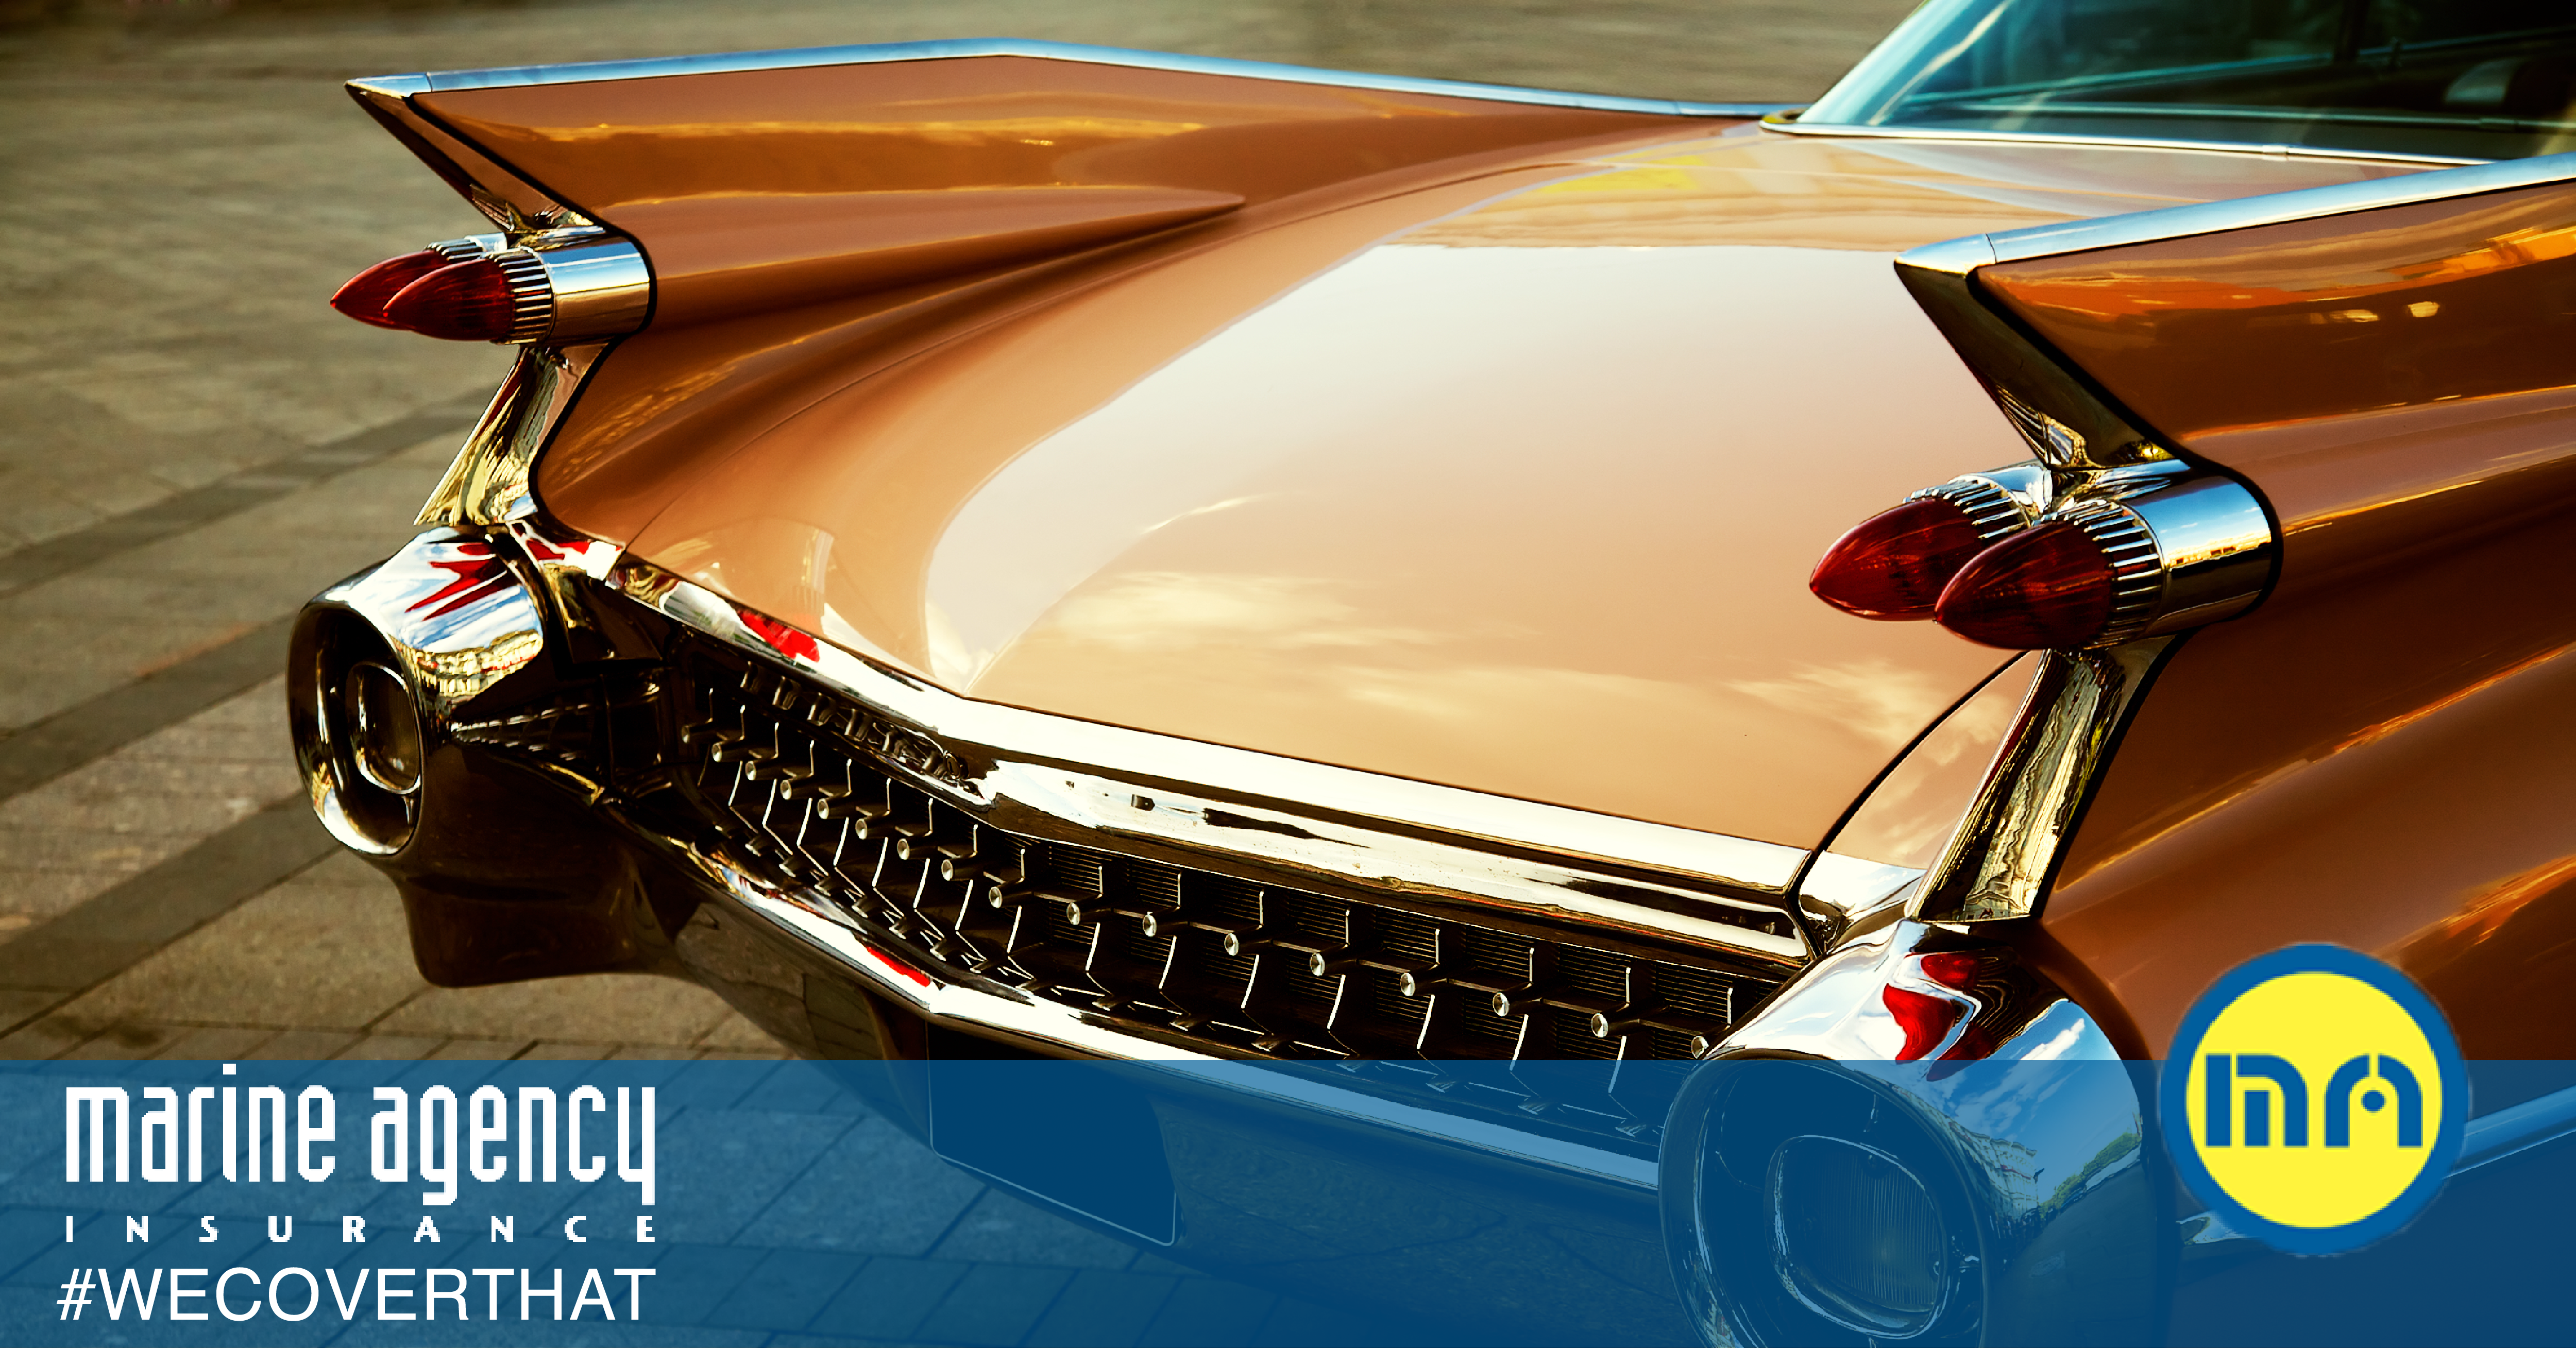 Protect Your Coupe with Classic Car Insurance